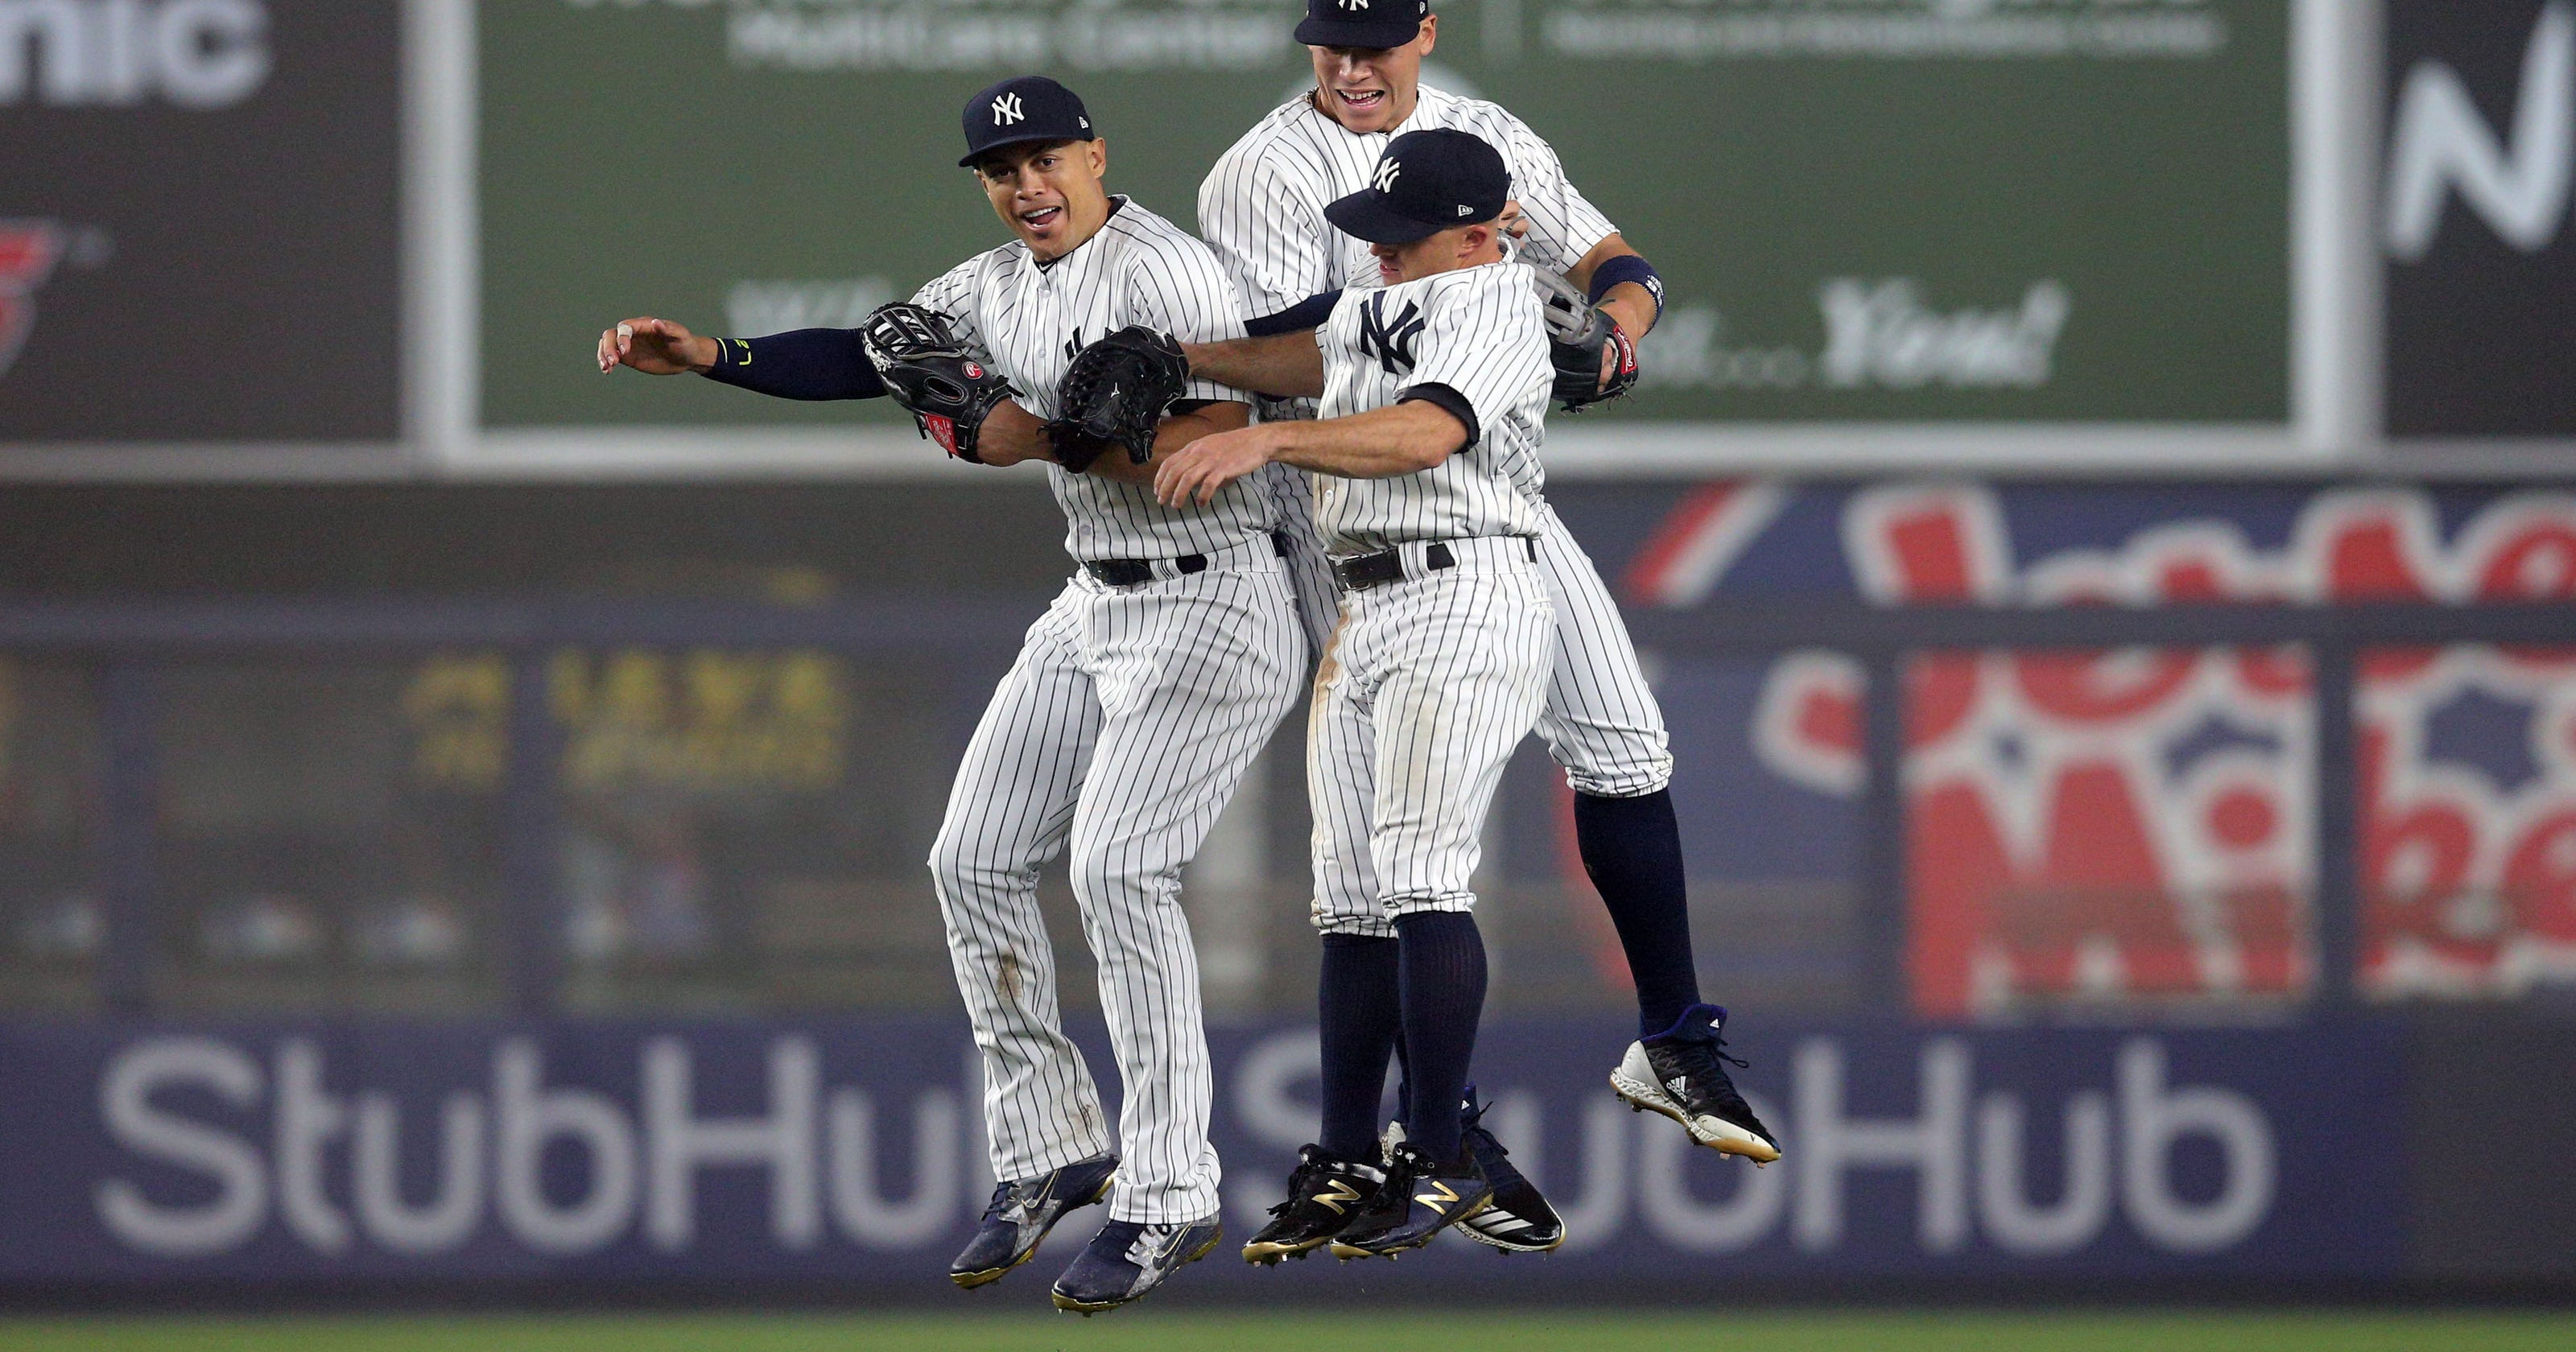 b1613dee0b4 MLB power rankings  Yankees leapfrog Red Sox for top spot as AL East battle  continues